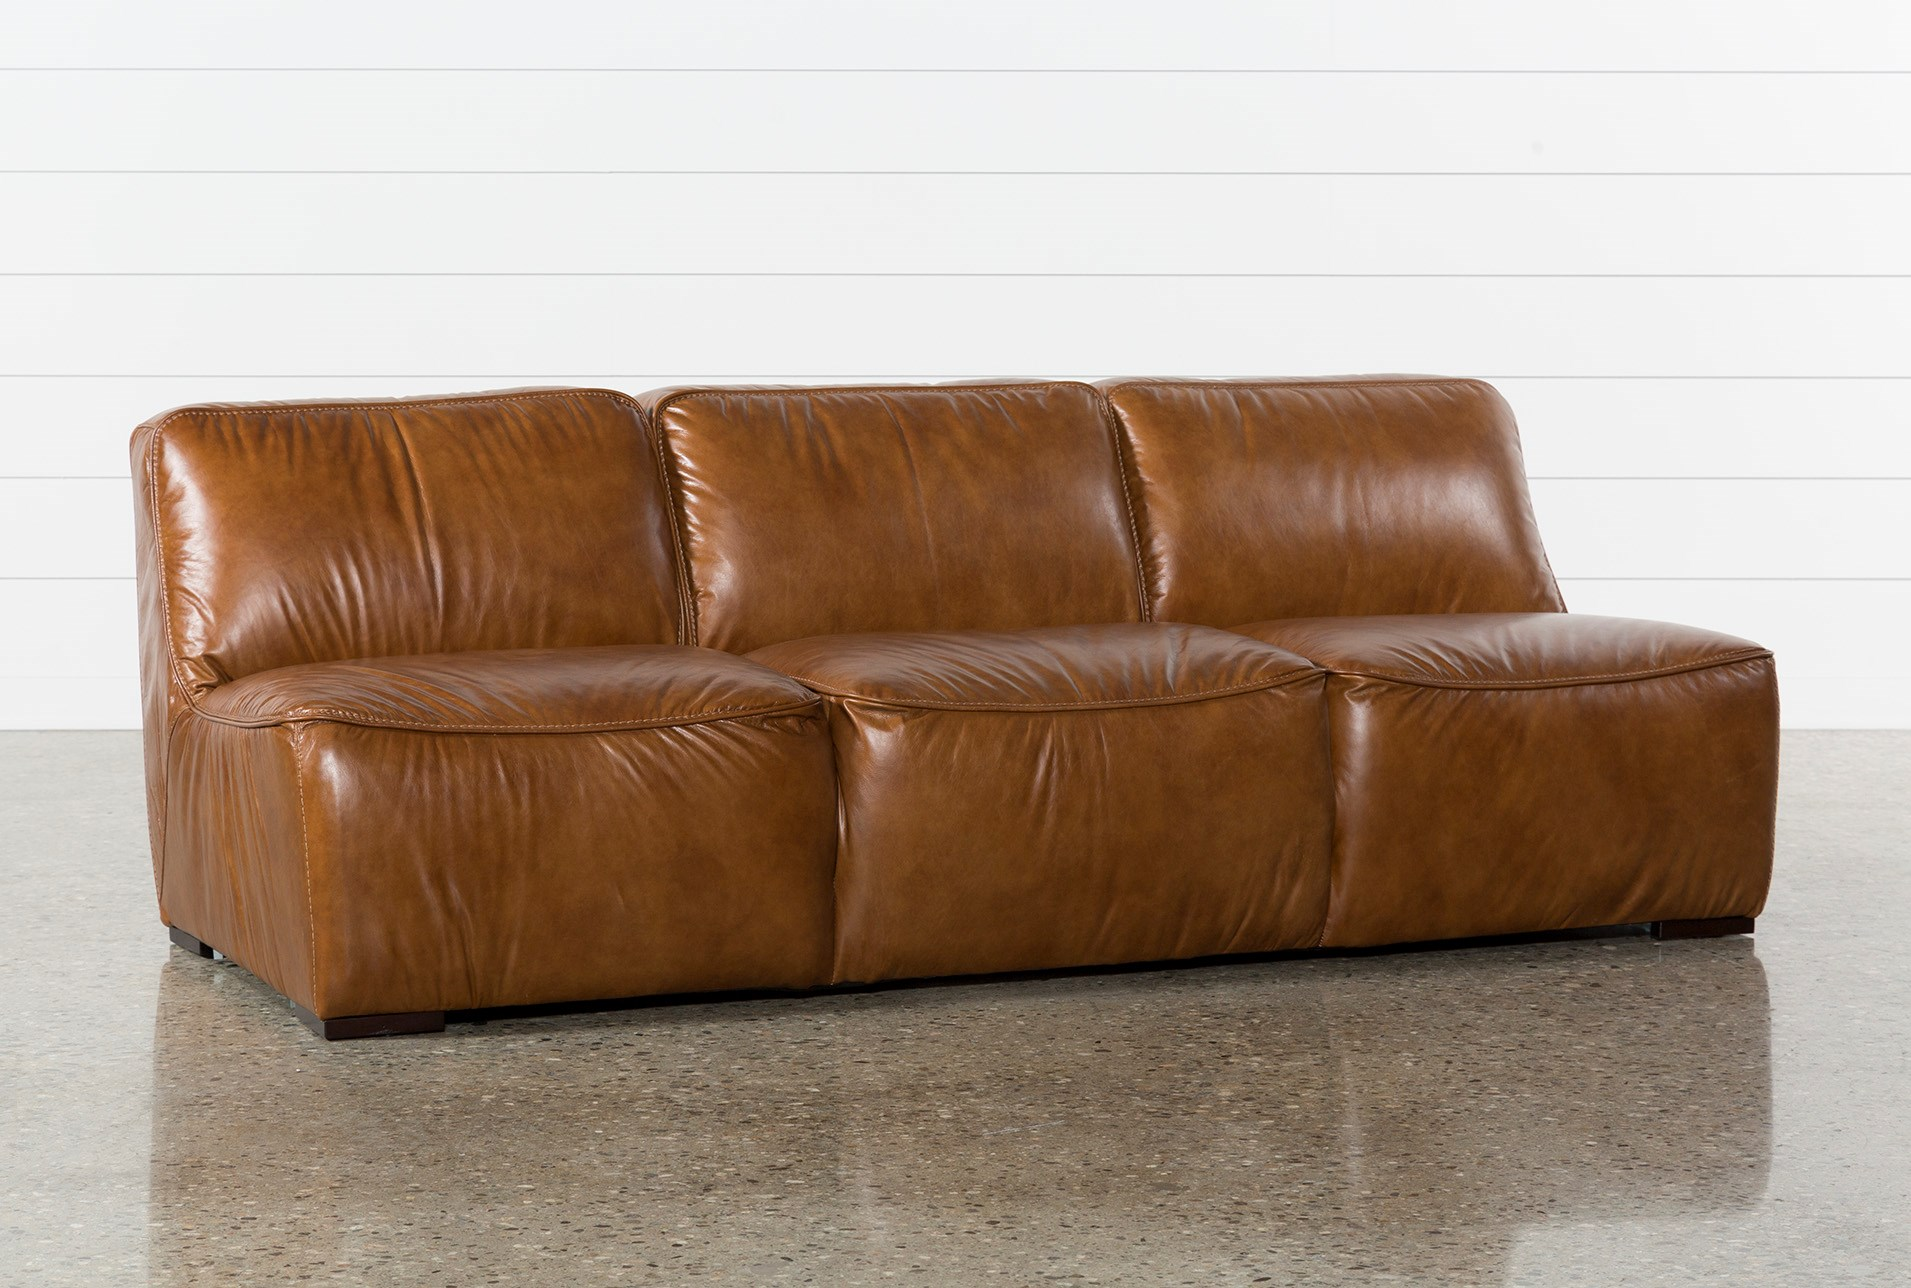 Burton Leather Armless Sofa Qty 1 Has Been Successfully Added To Your Cart